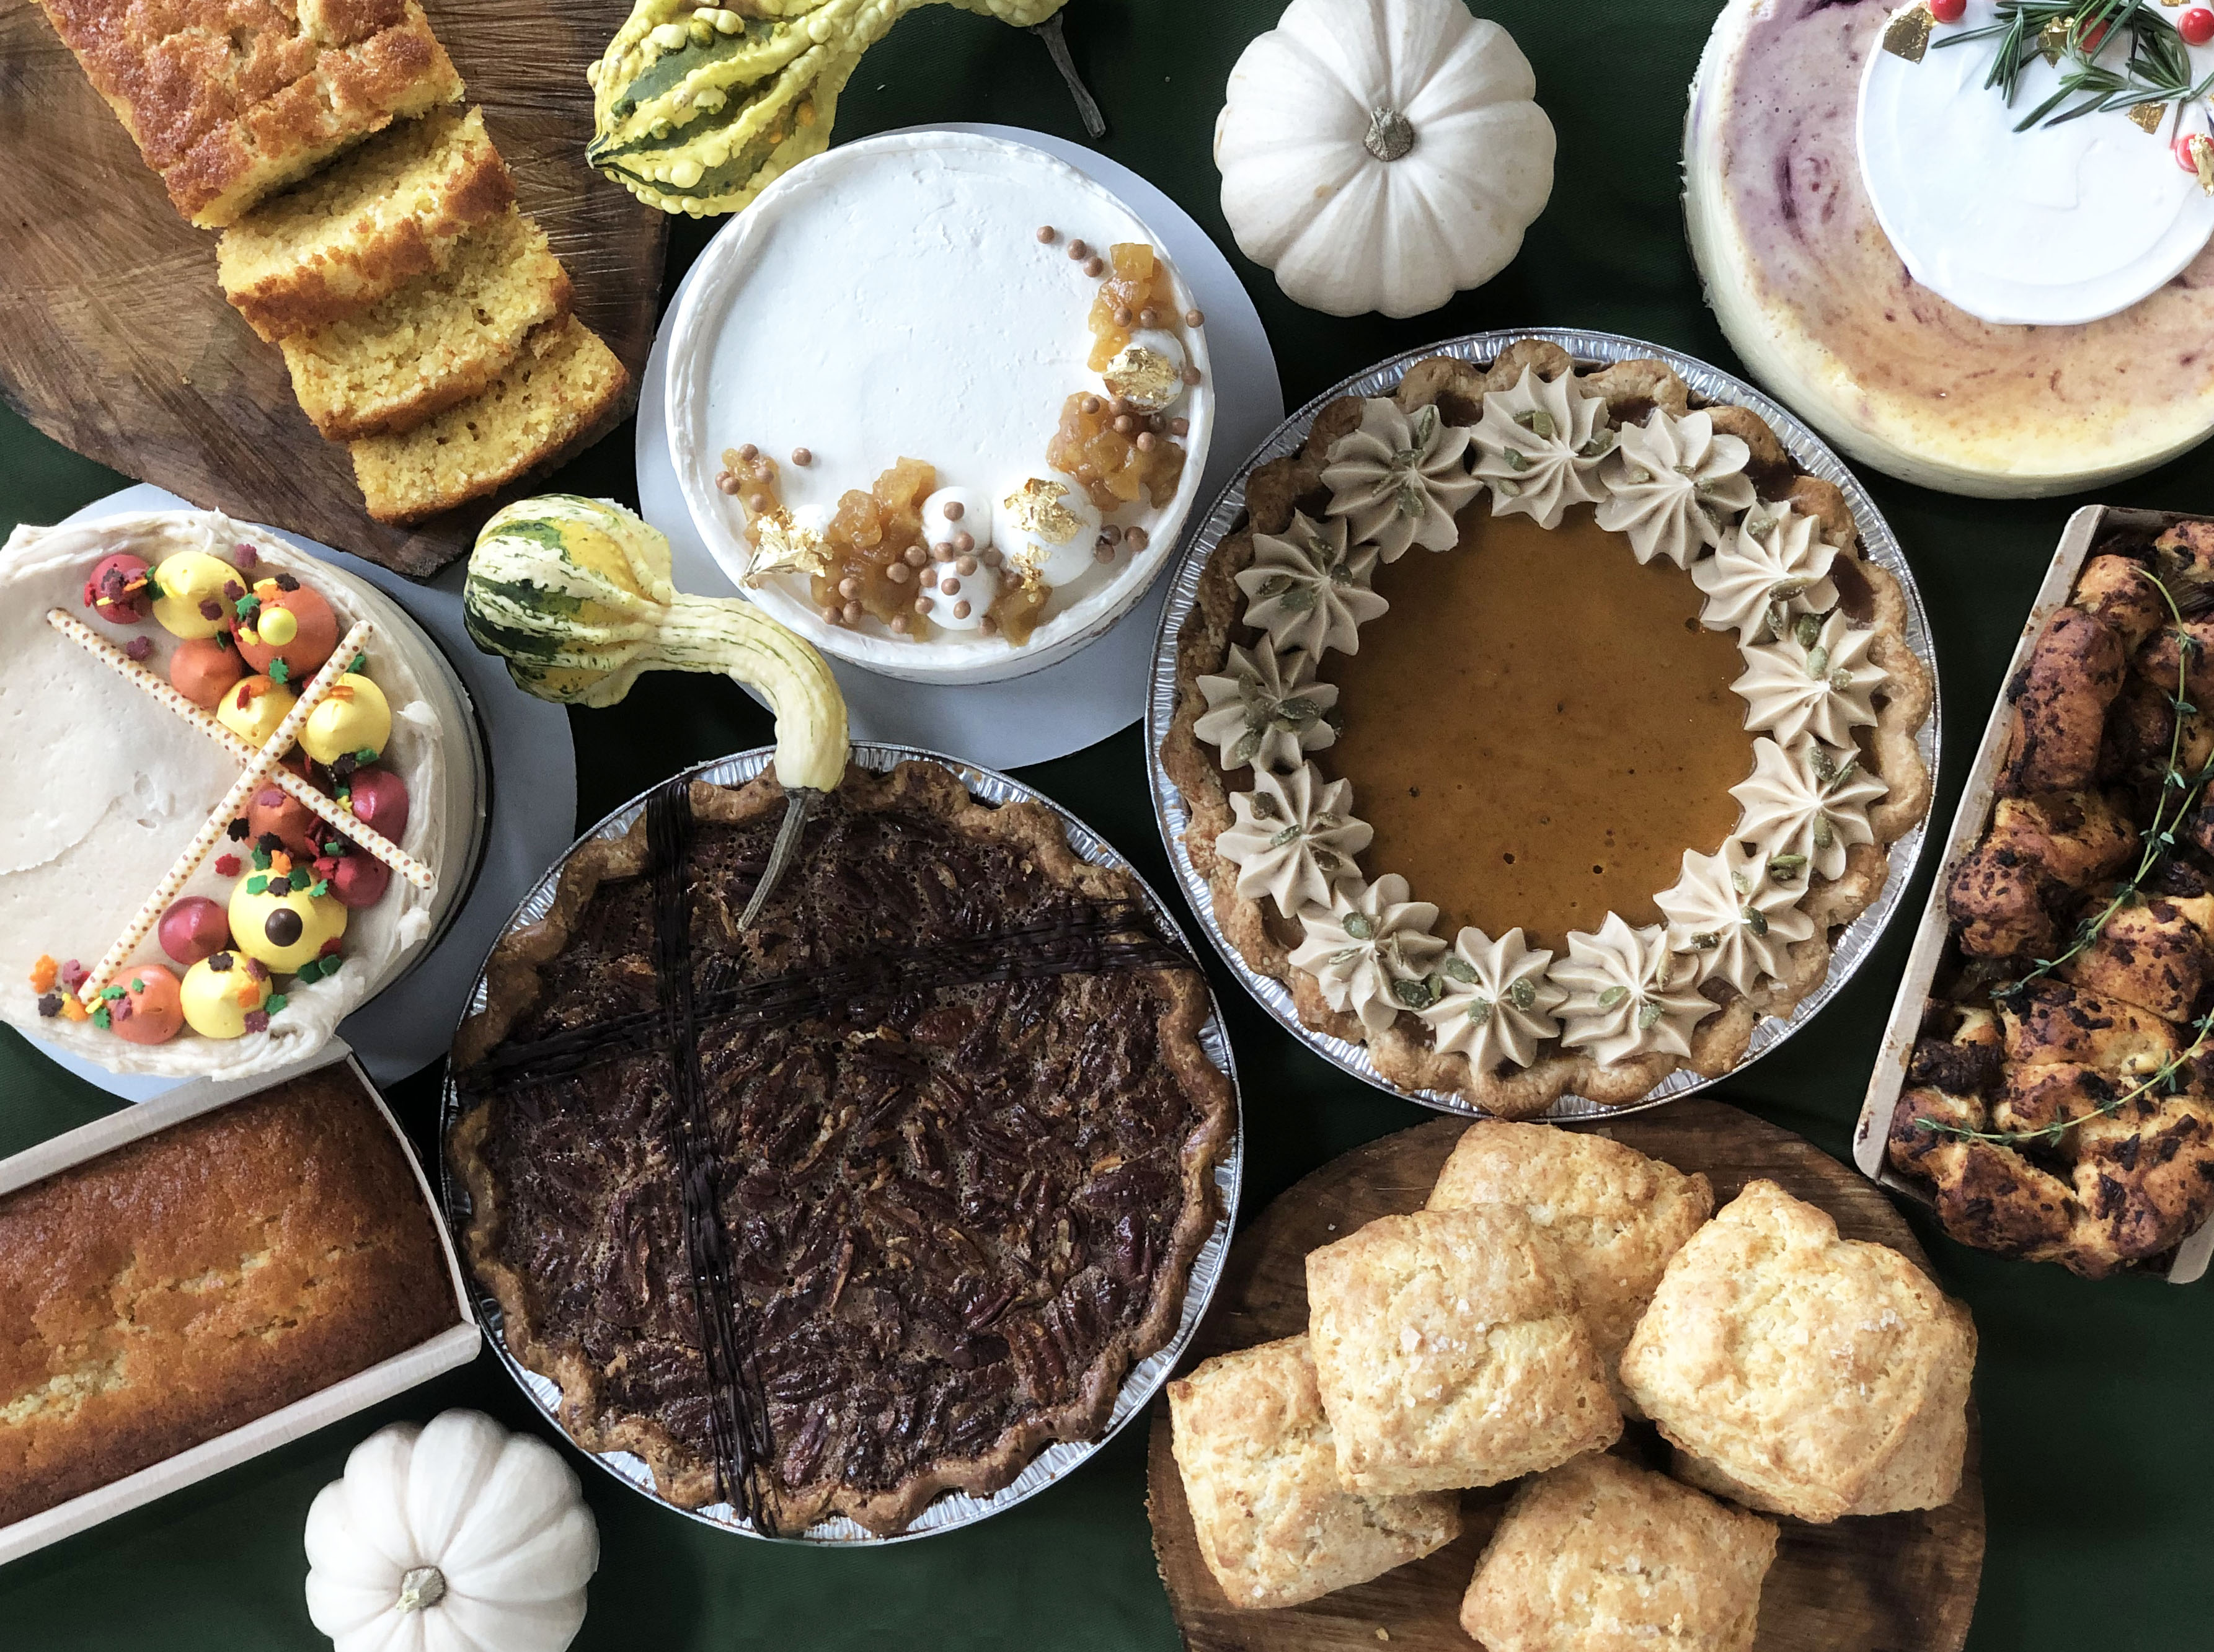 autumnal looking pies and cakes